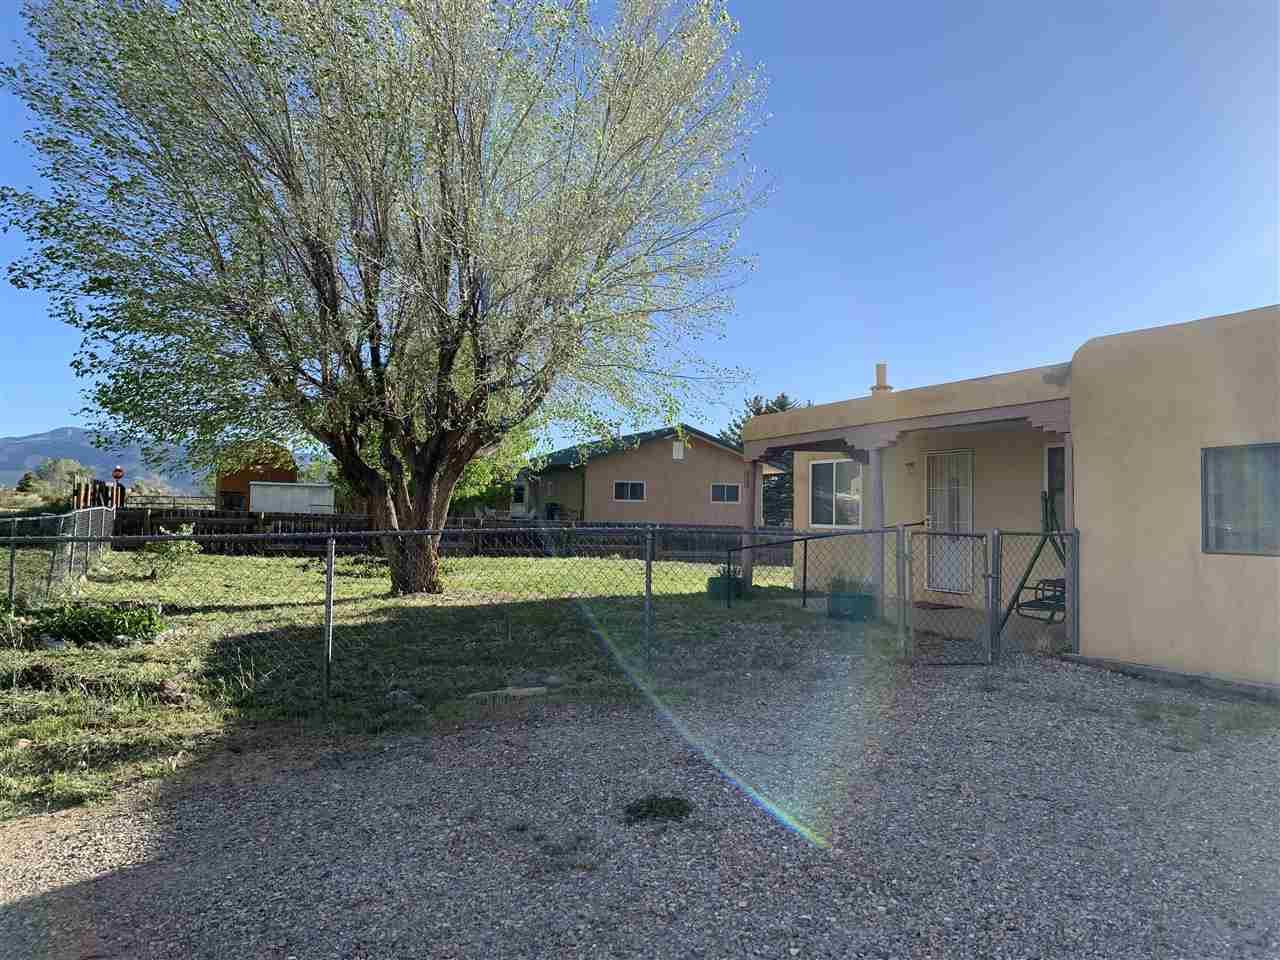 108 Adobe Lane, Taos, NM 87571